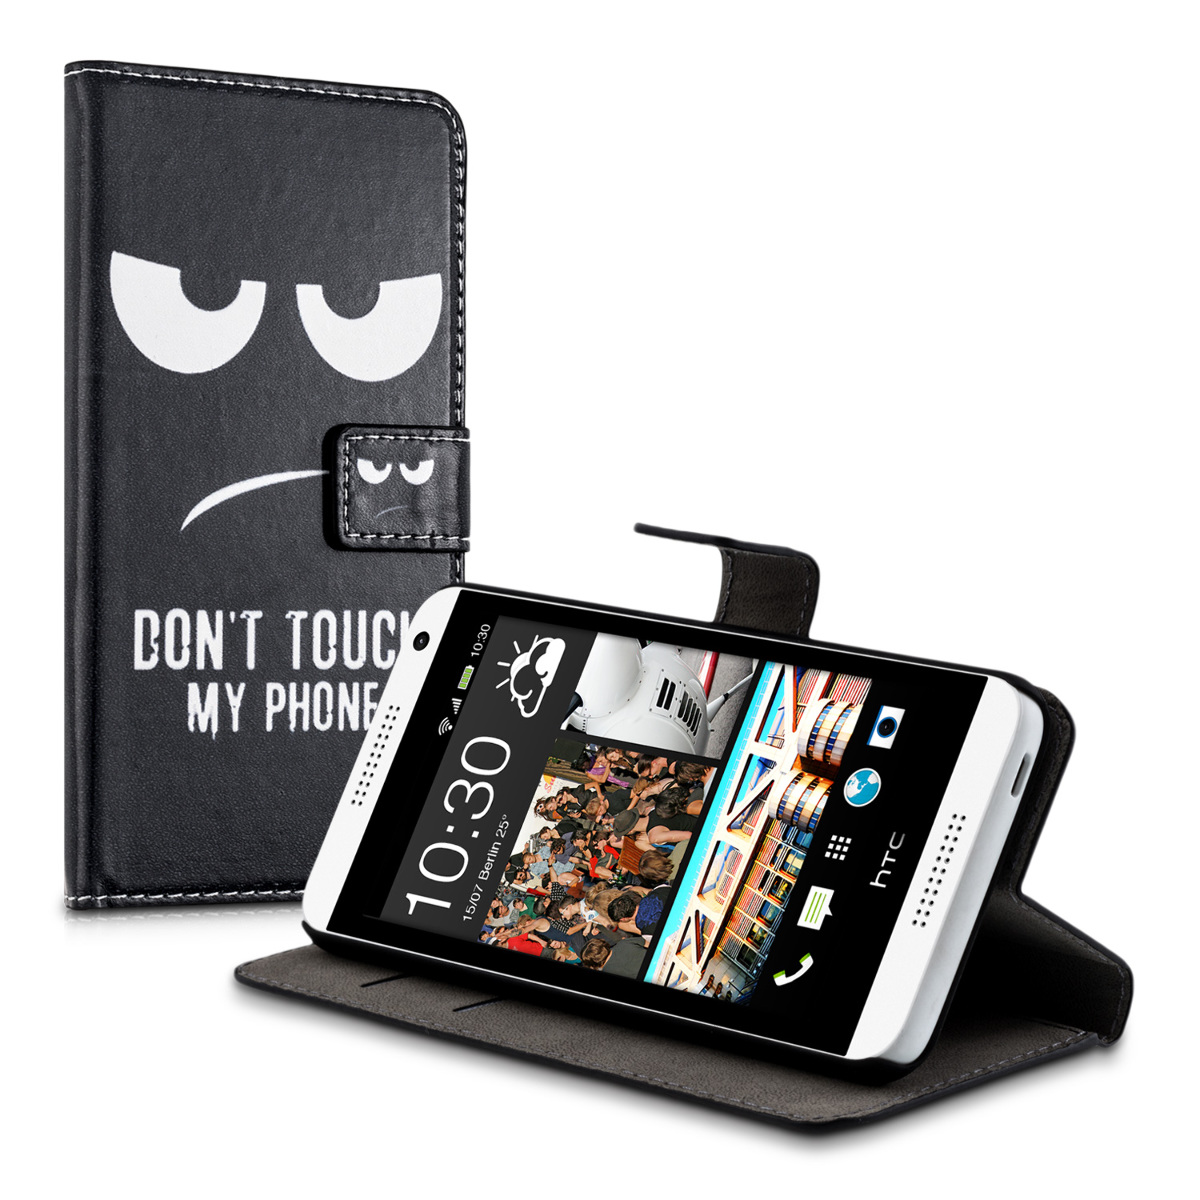 kwmobile-ETUI-EN-CUIR-SYNTHETIQUE-CHIC-POUR-HTC-DESIRE-610-SUPPORT-PRATIQUE